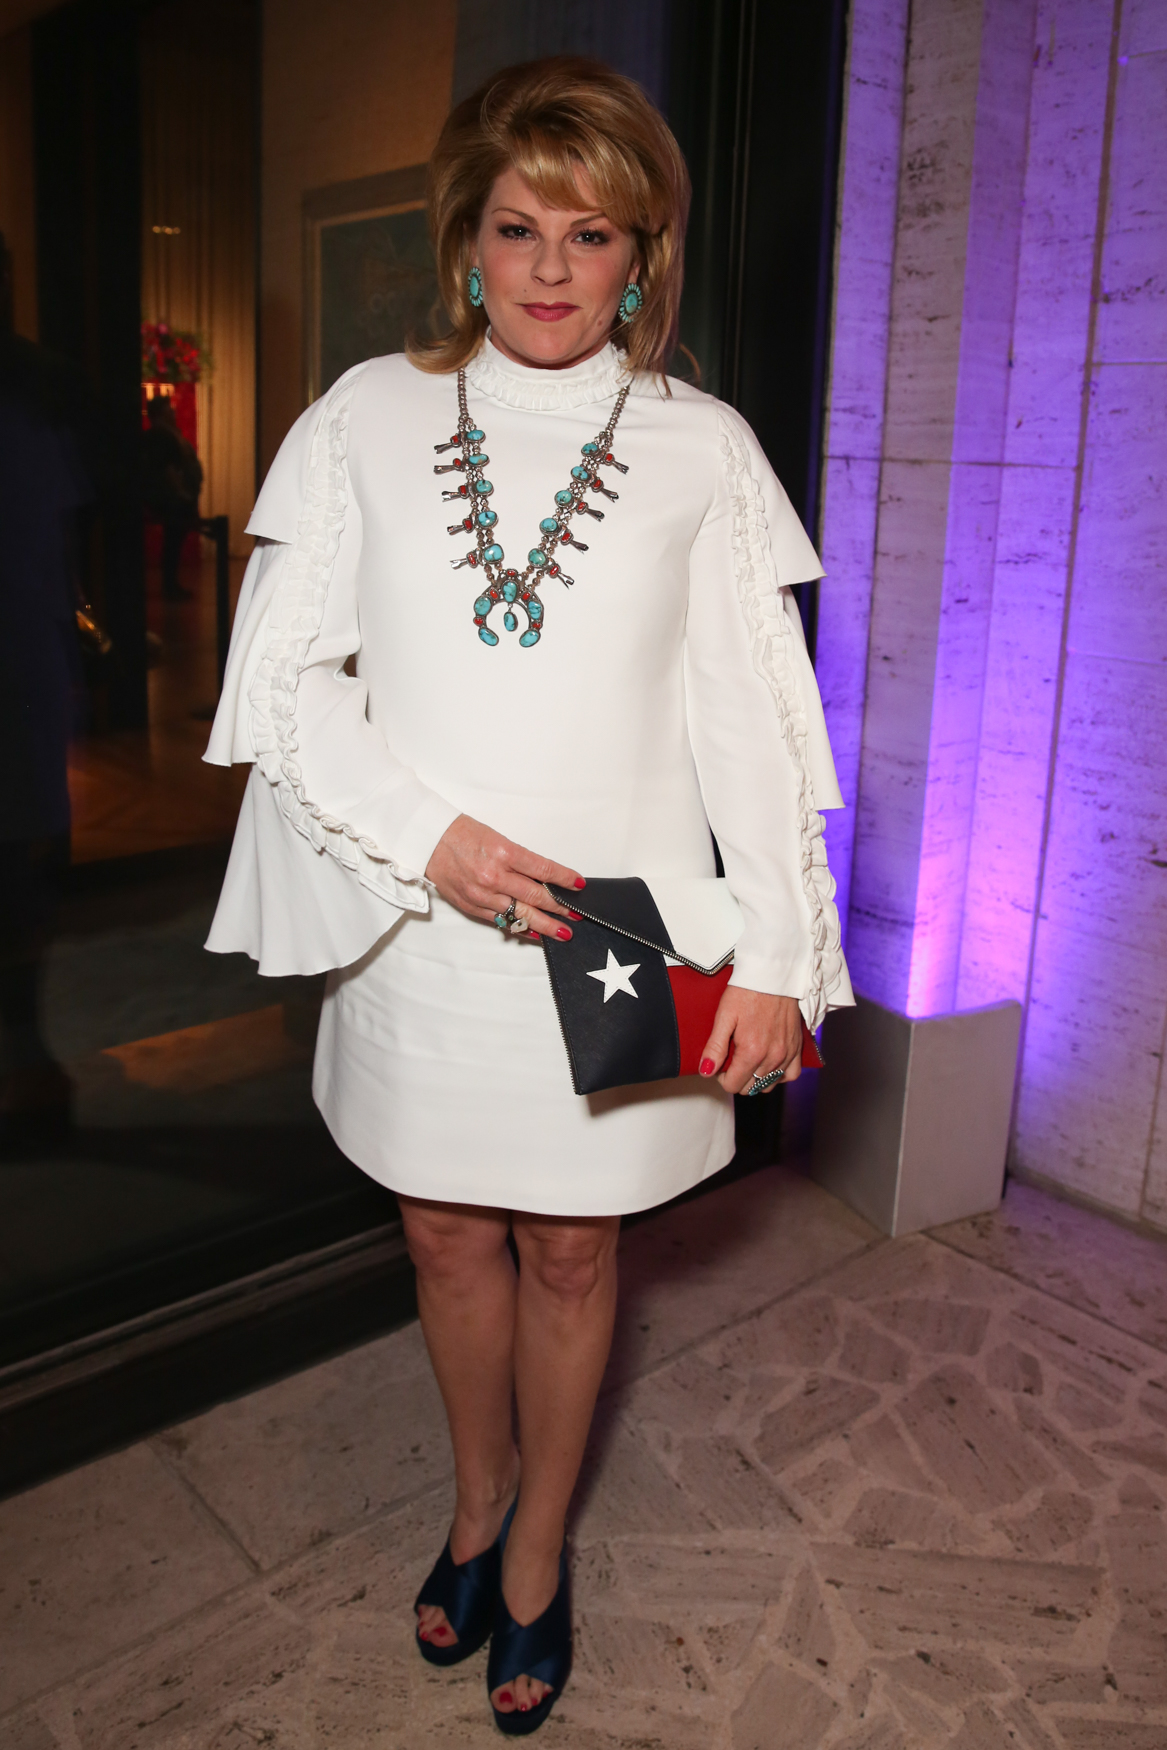 Meghan Johnson's outfit was totally Texas and super eye-catching - we love how the white frock upgrades the traditional turquoise jewelry.{ }(Amanda Andrade-Rhoades/DC Refined)